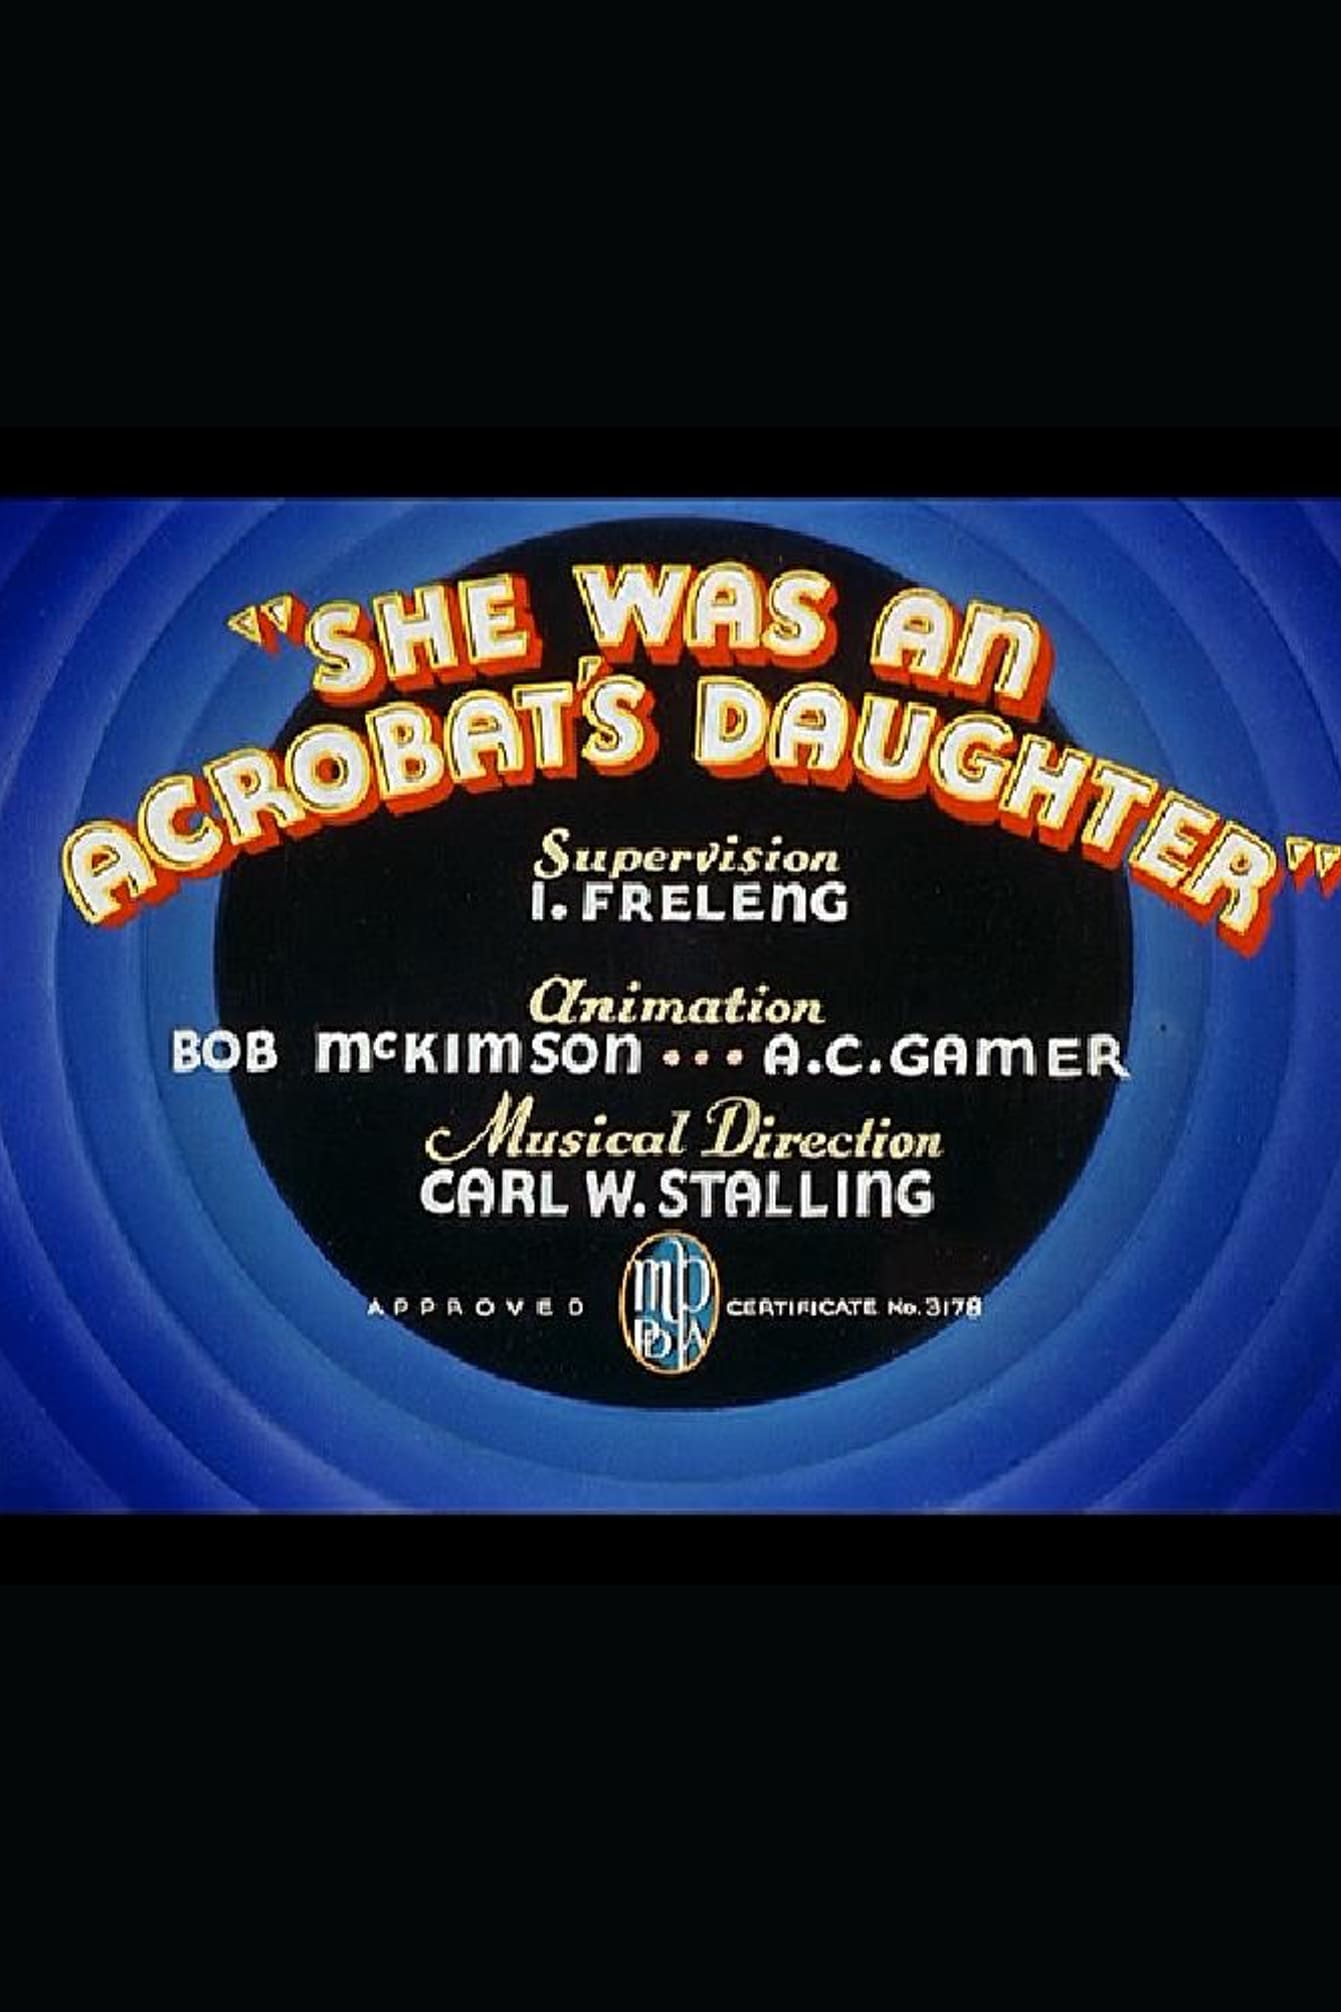 She Was an Acrobat's Daughter (1937)